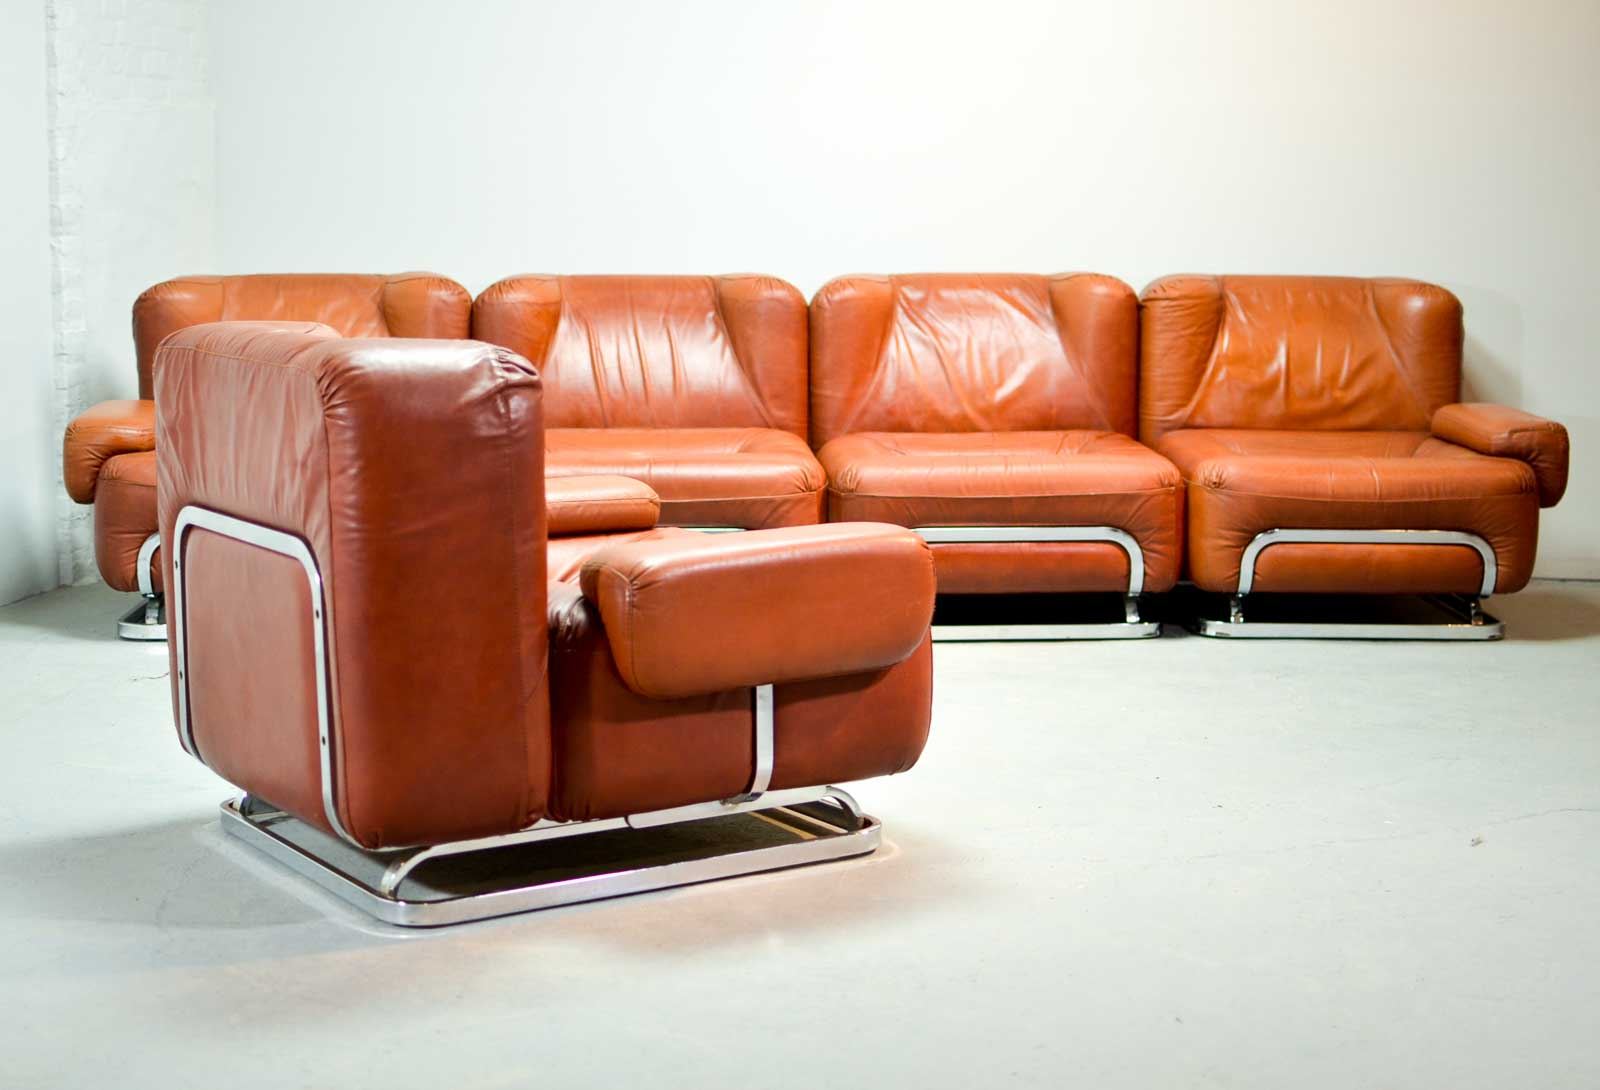 Mid Century Leather 4 Seat Sofa And Lounge Chair In Style Of Tobia Scarpa 1970s Hpvintage Com